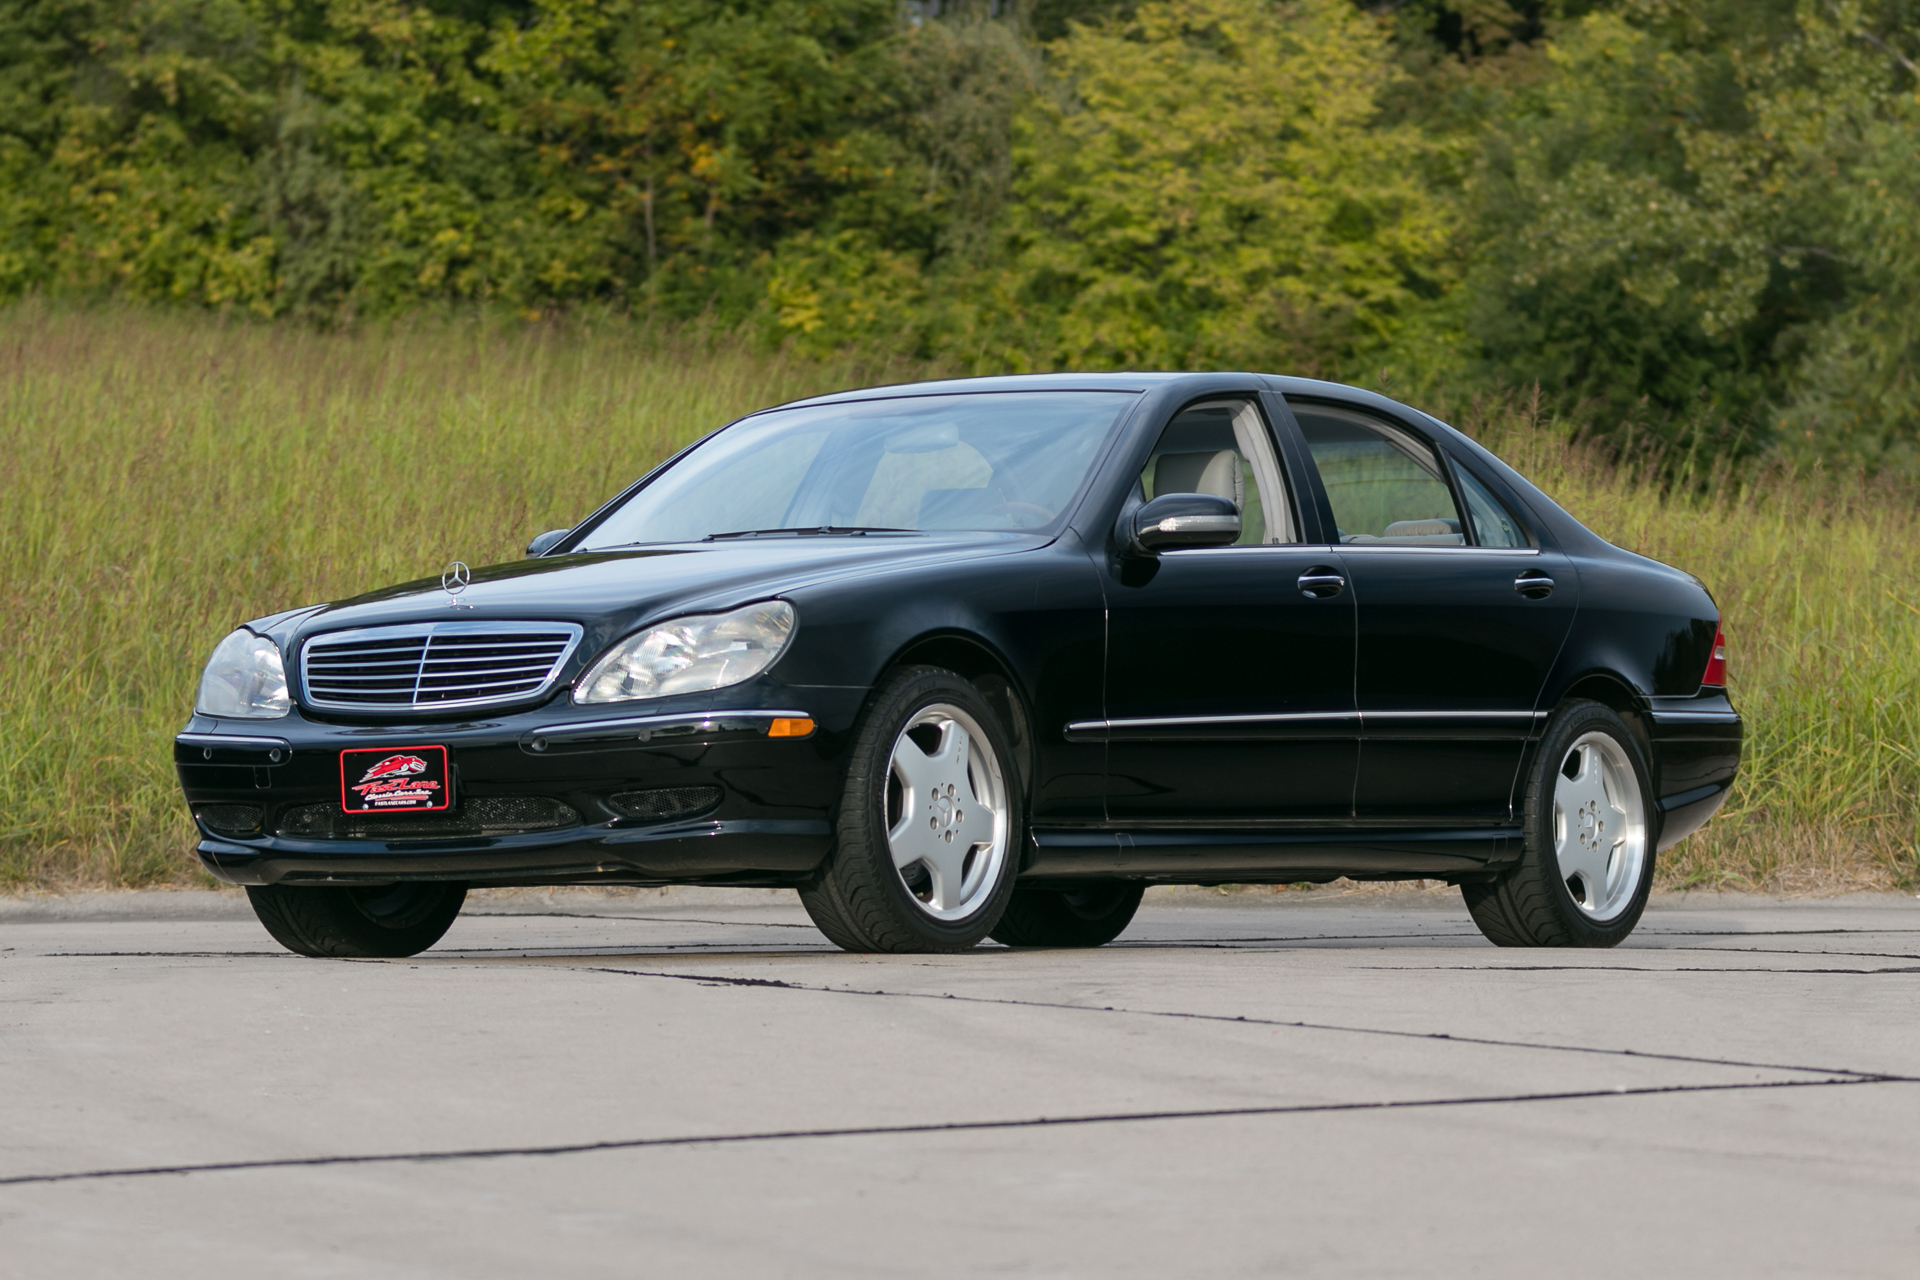 2001 mercedes benz s500 fast lane classic cars for 2001 mercedes benz